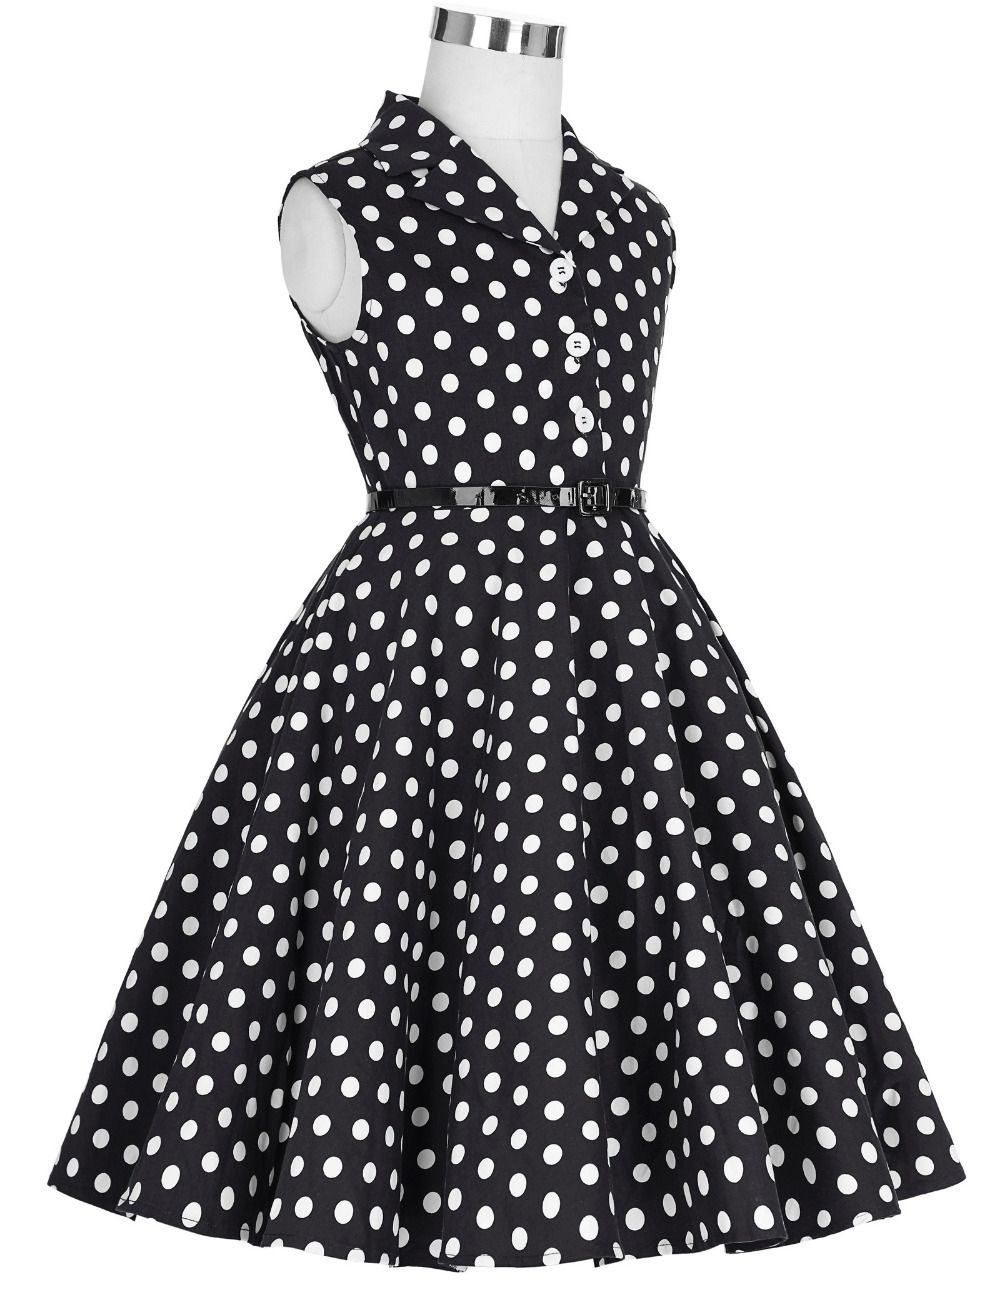 Sleeveless Polka Dots Printed Vintage Pin Up Style Flower Girl Dress